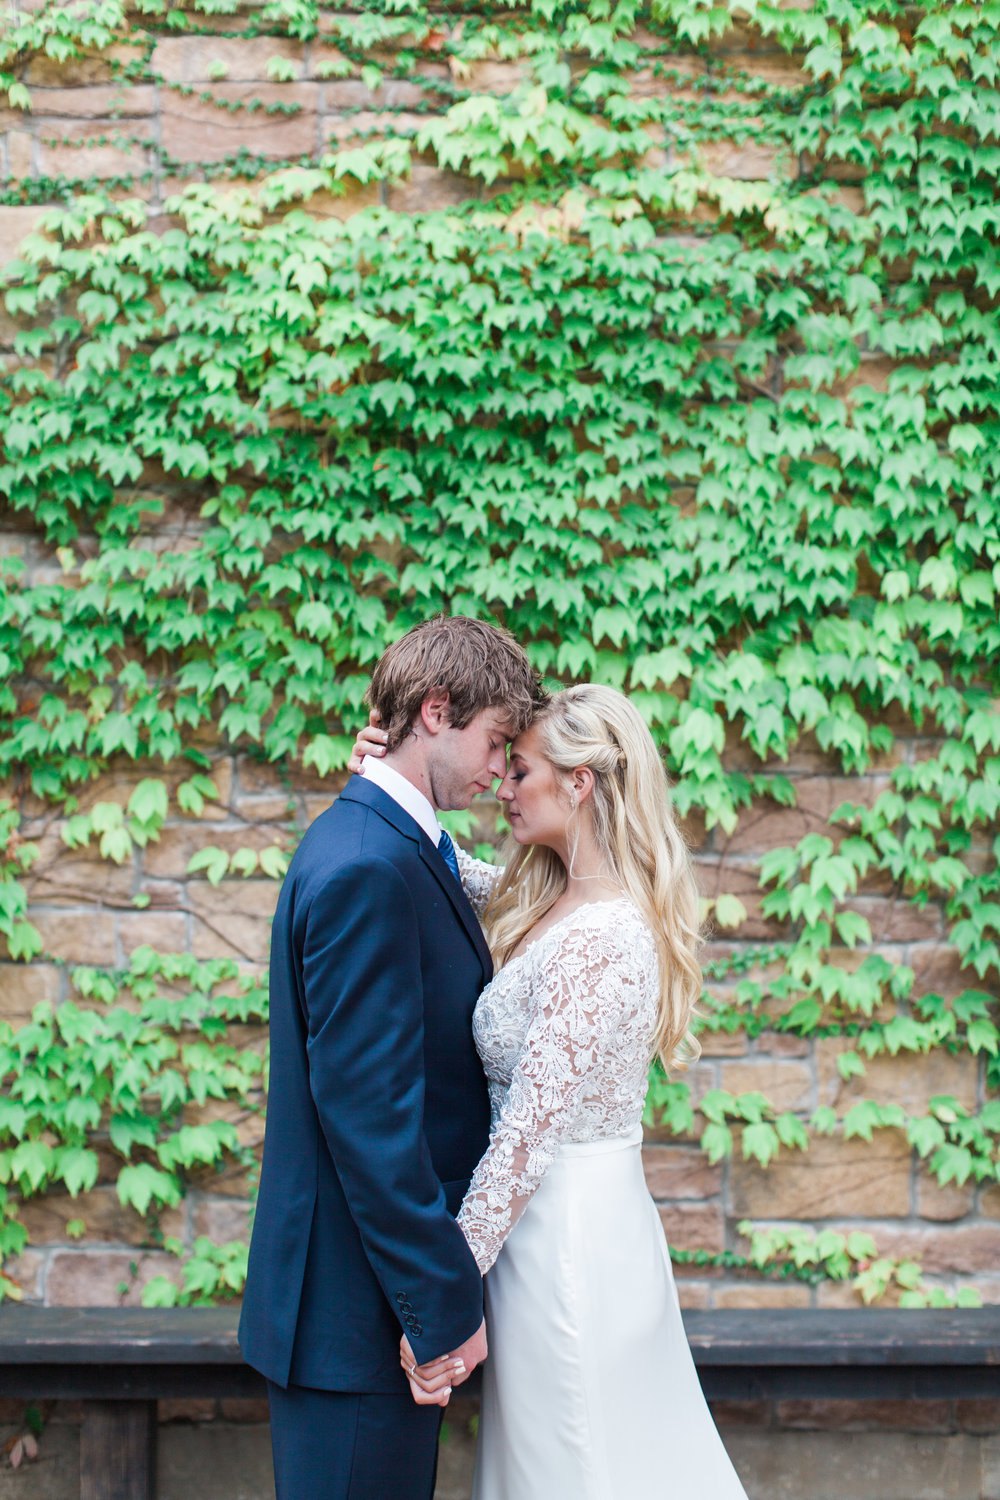 Organic, Greenery Wedding at Aristide with Jessica D'Onforio Photography